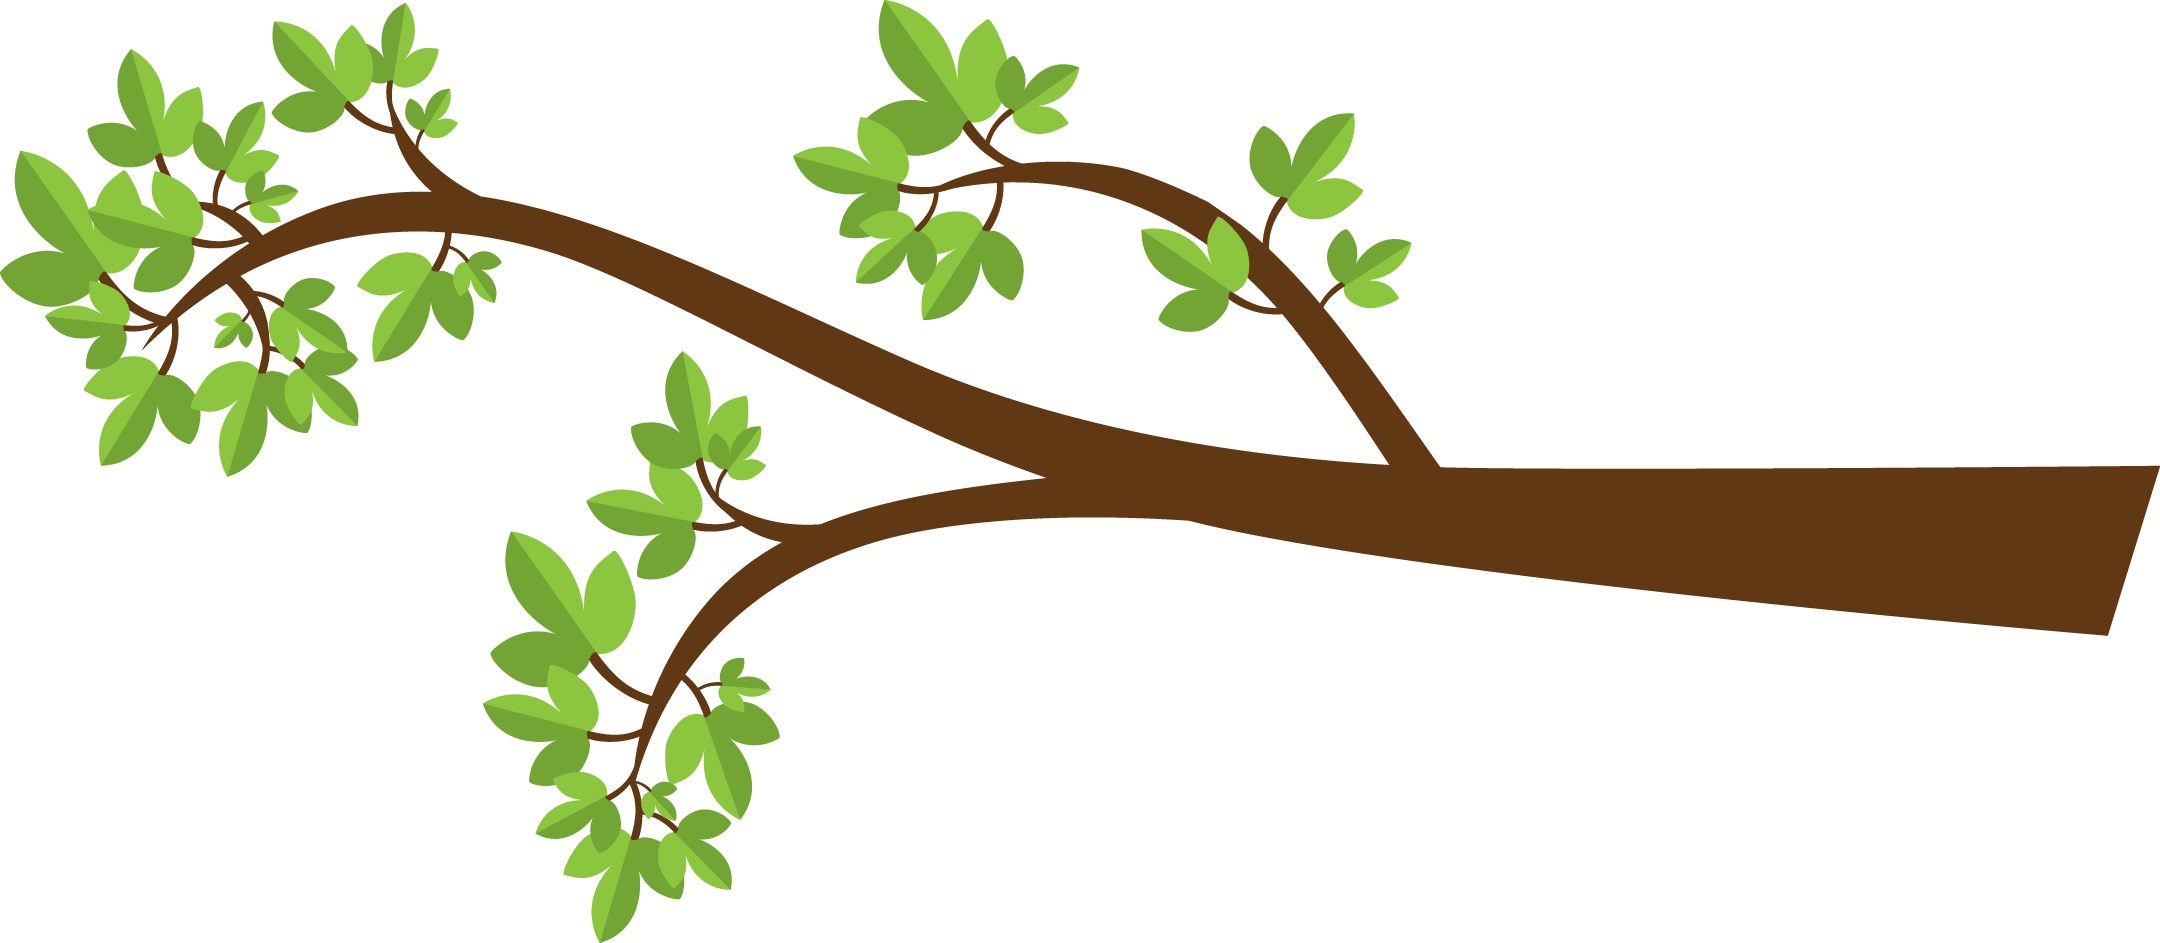 Tree Branche Clipart Best